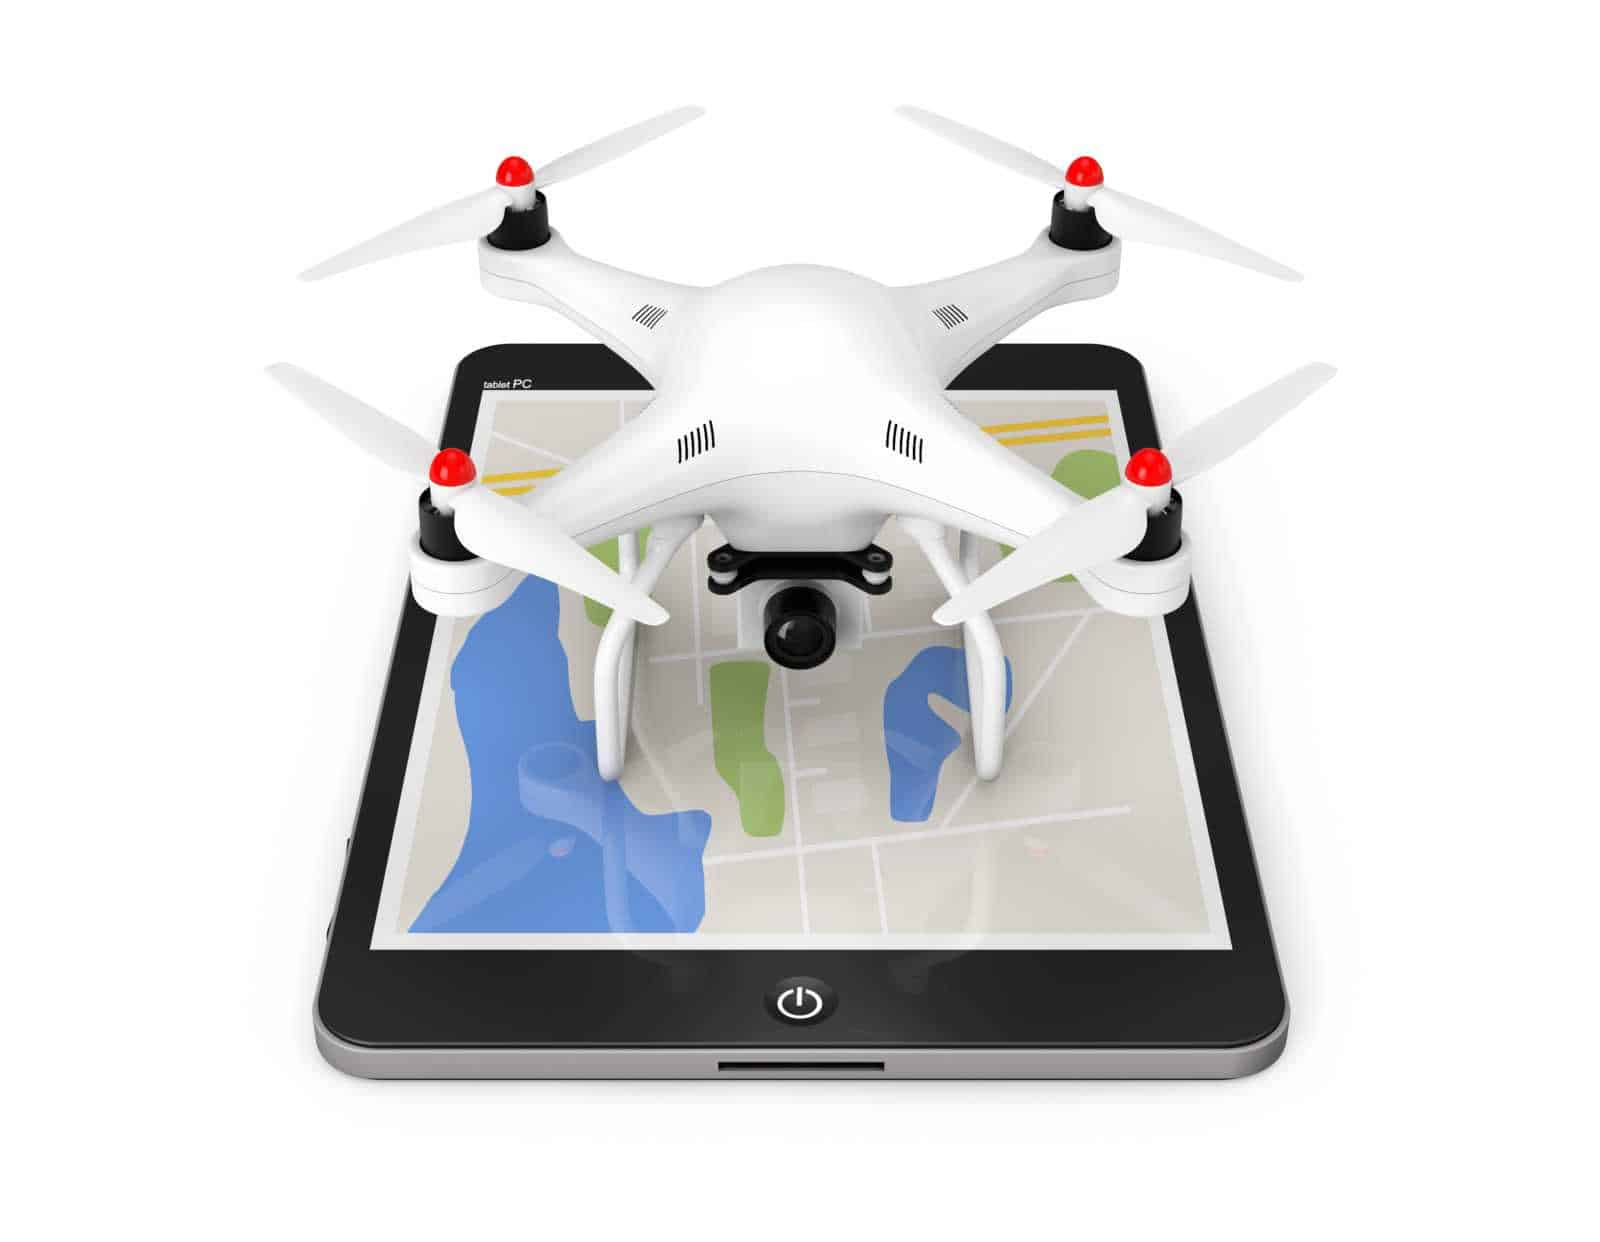 White quadcopter drone placed on an ipad